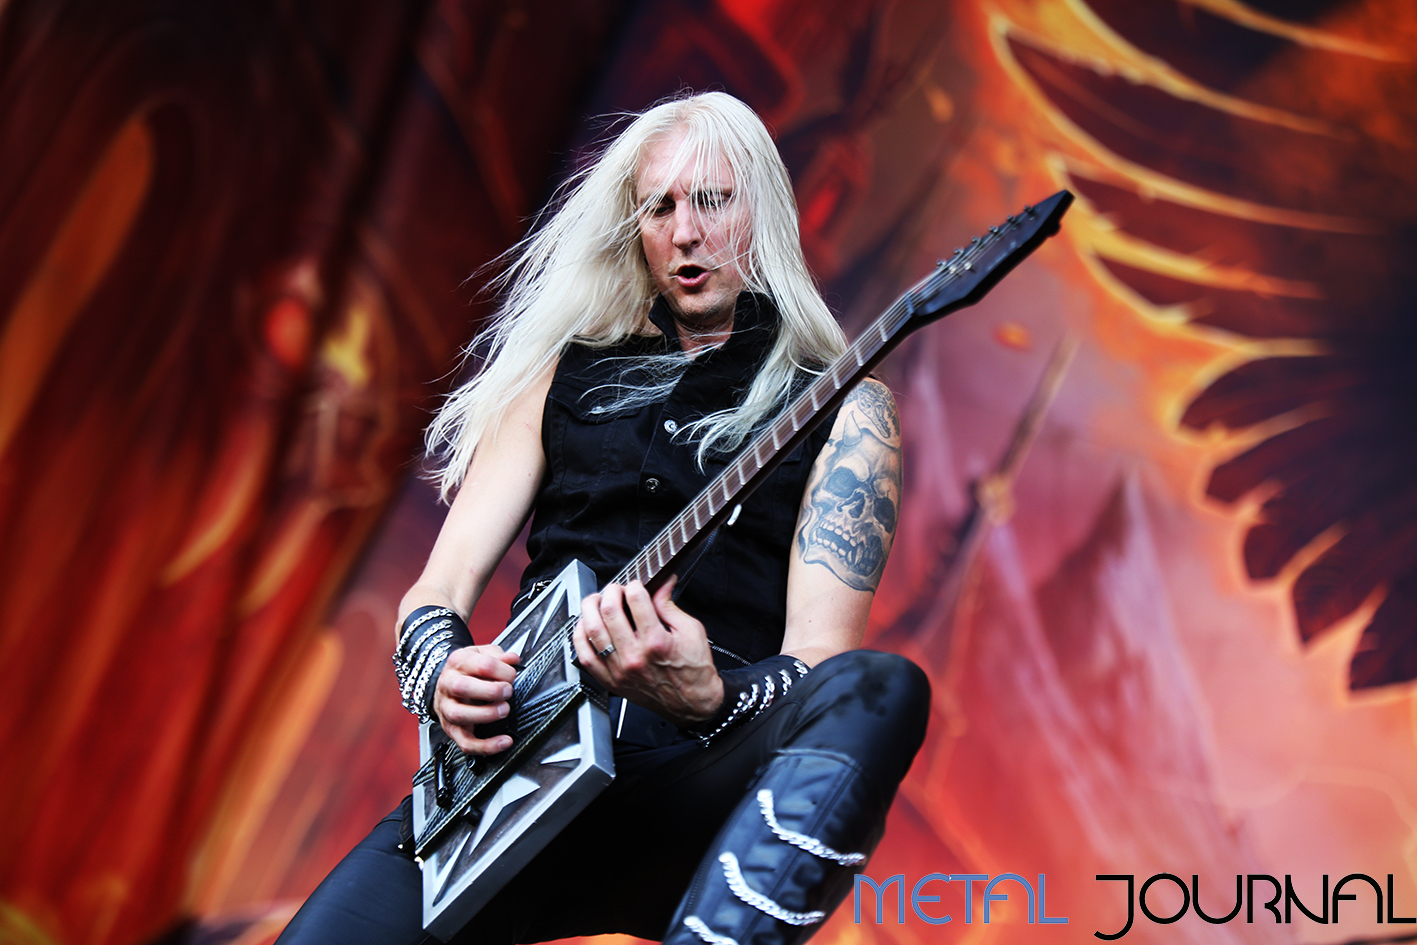 hammerfall - leyendas del rock 2019 metal journal pic 2